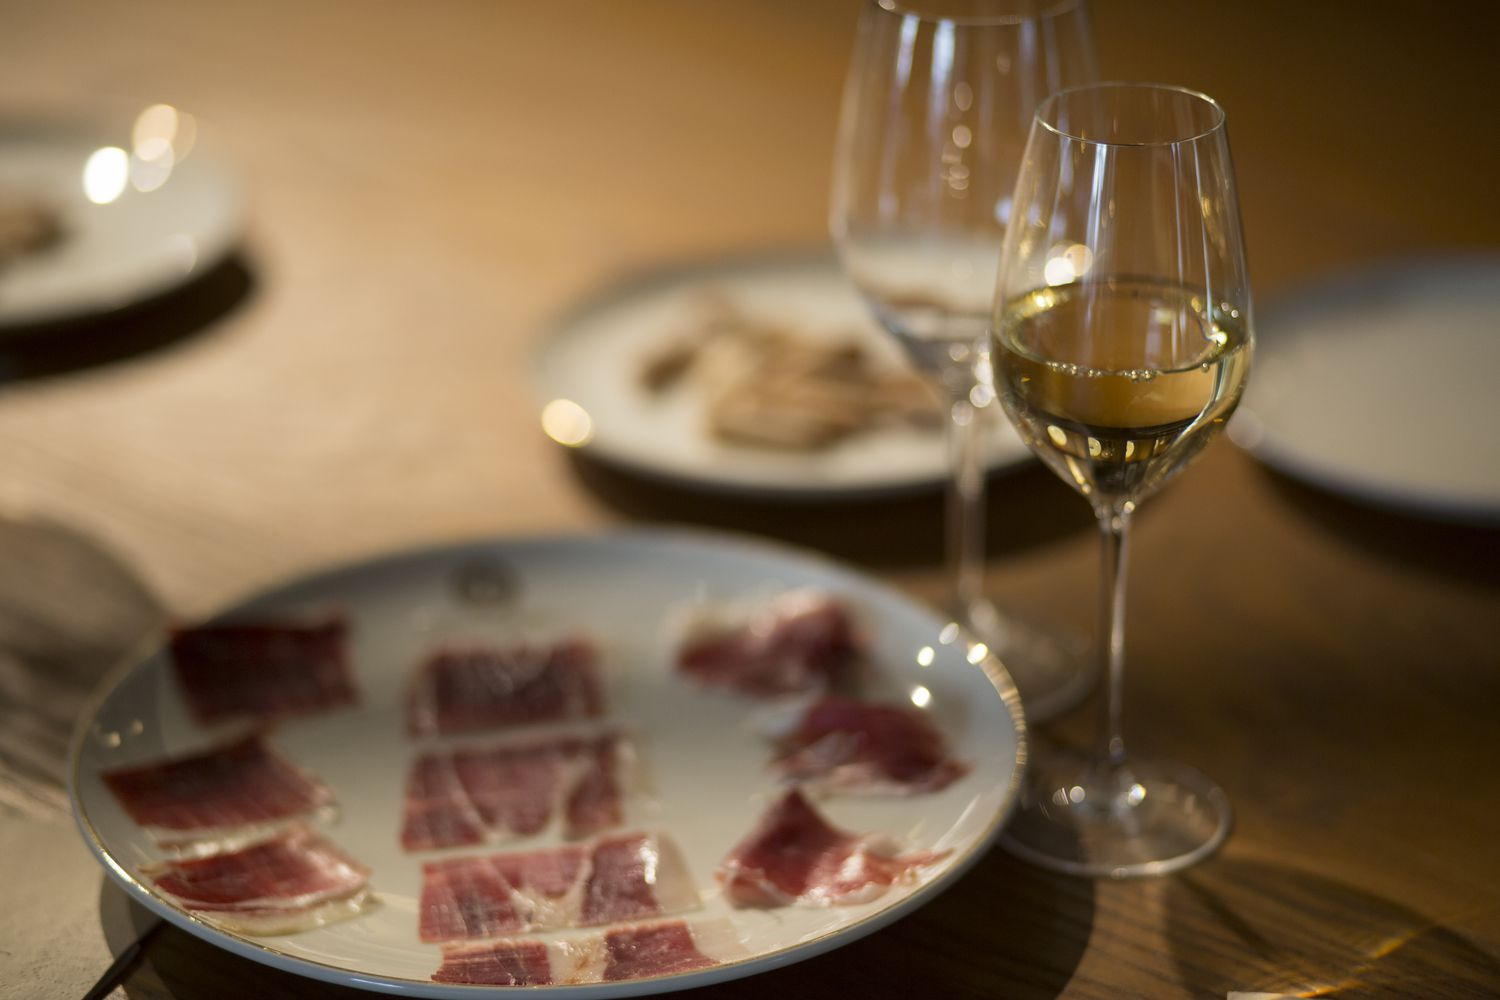 Plate of jamón and glass of sherry wine